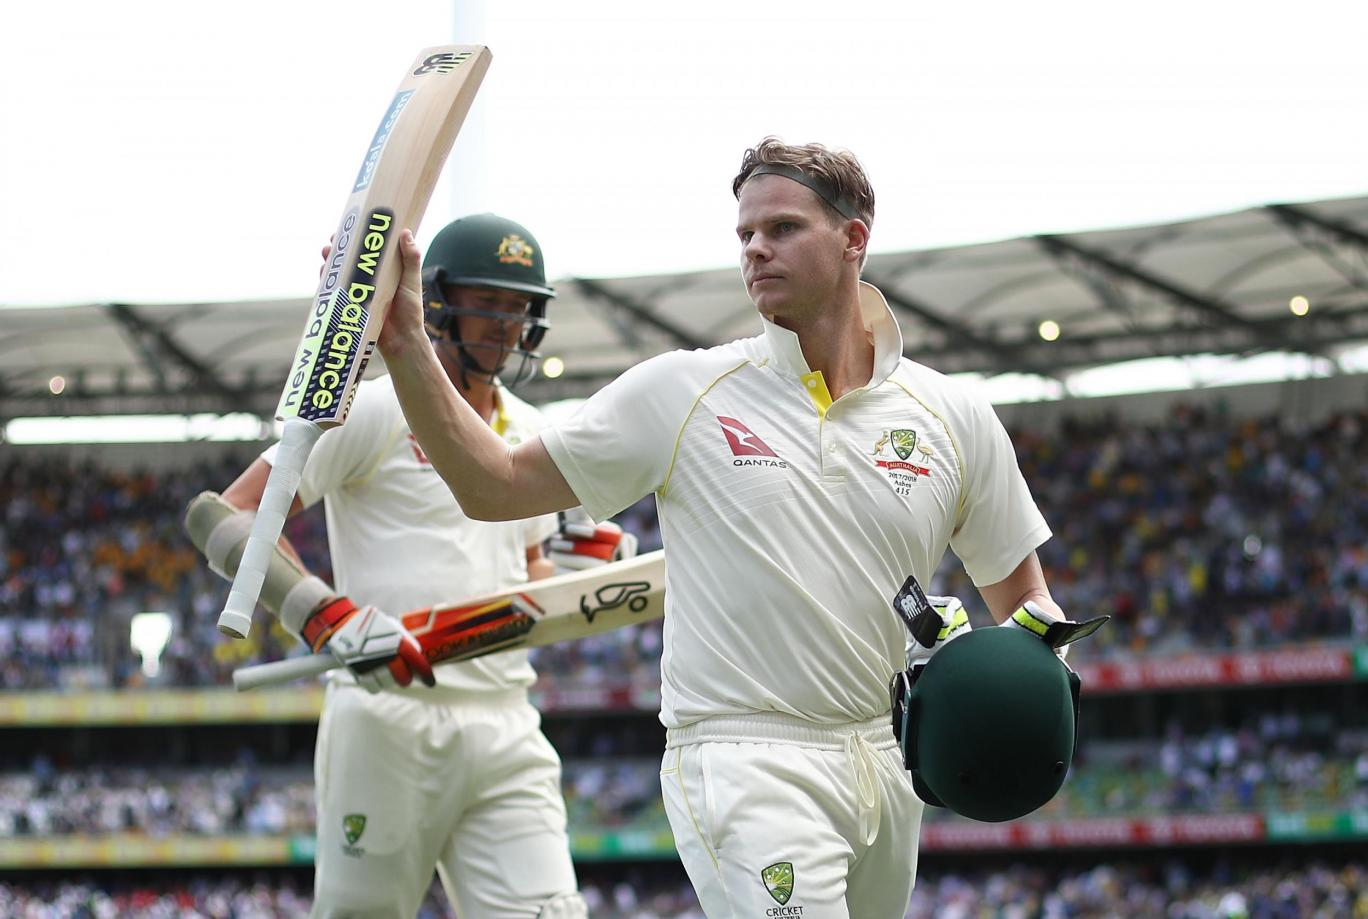 australia-all-out-at-328-to-lead-england-by-26-runs